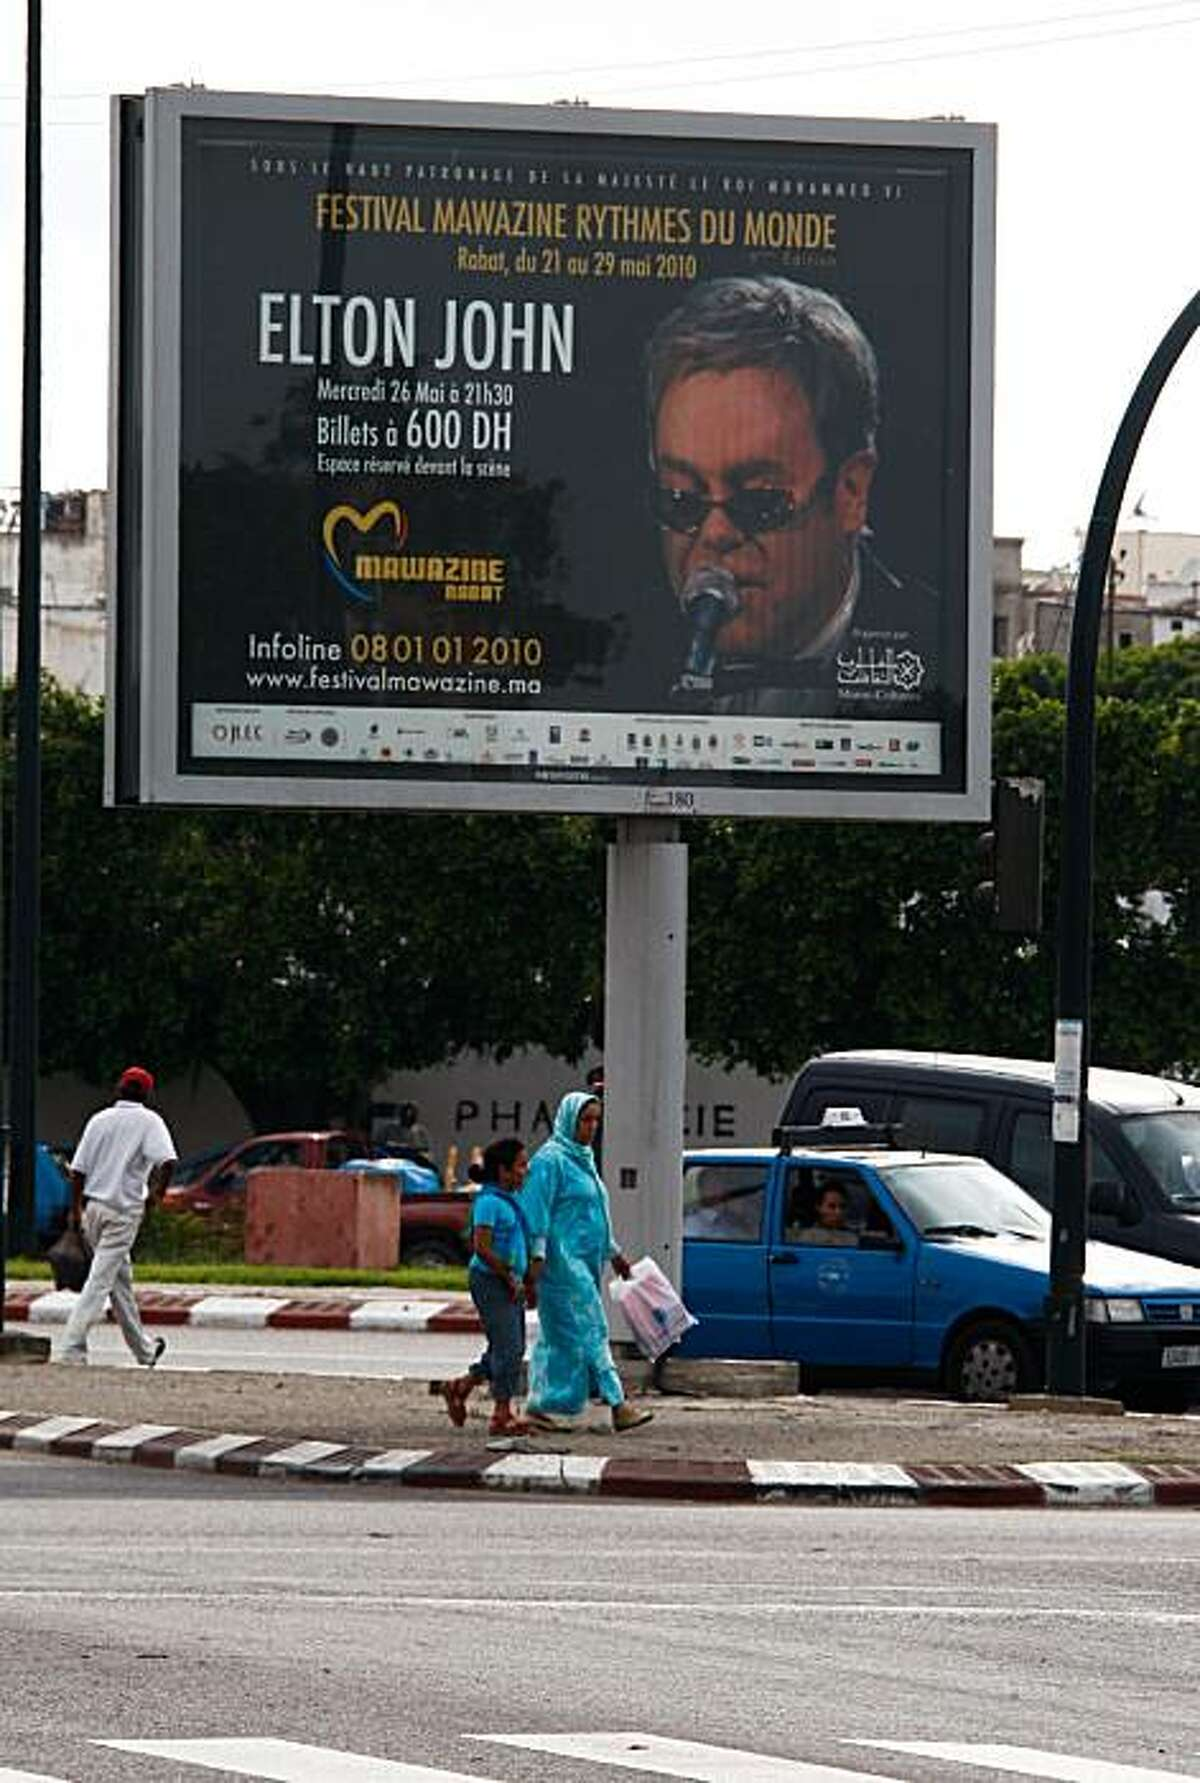 Poster of British singer and composer Elton John in the street of Rabat, Morocco, Wednesday May 26, 2010. Elton John was expected to be the highlight of Morocco's biggest music festival Wednesday evening, despite calls by the country's main Islamist party to shelve the British singer because of his homosexuality.